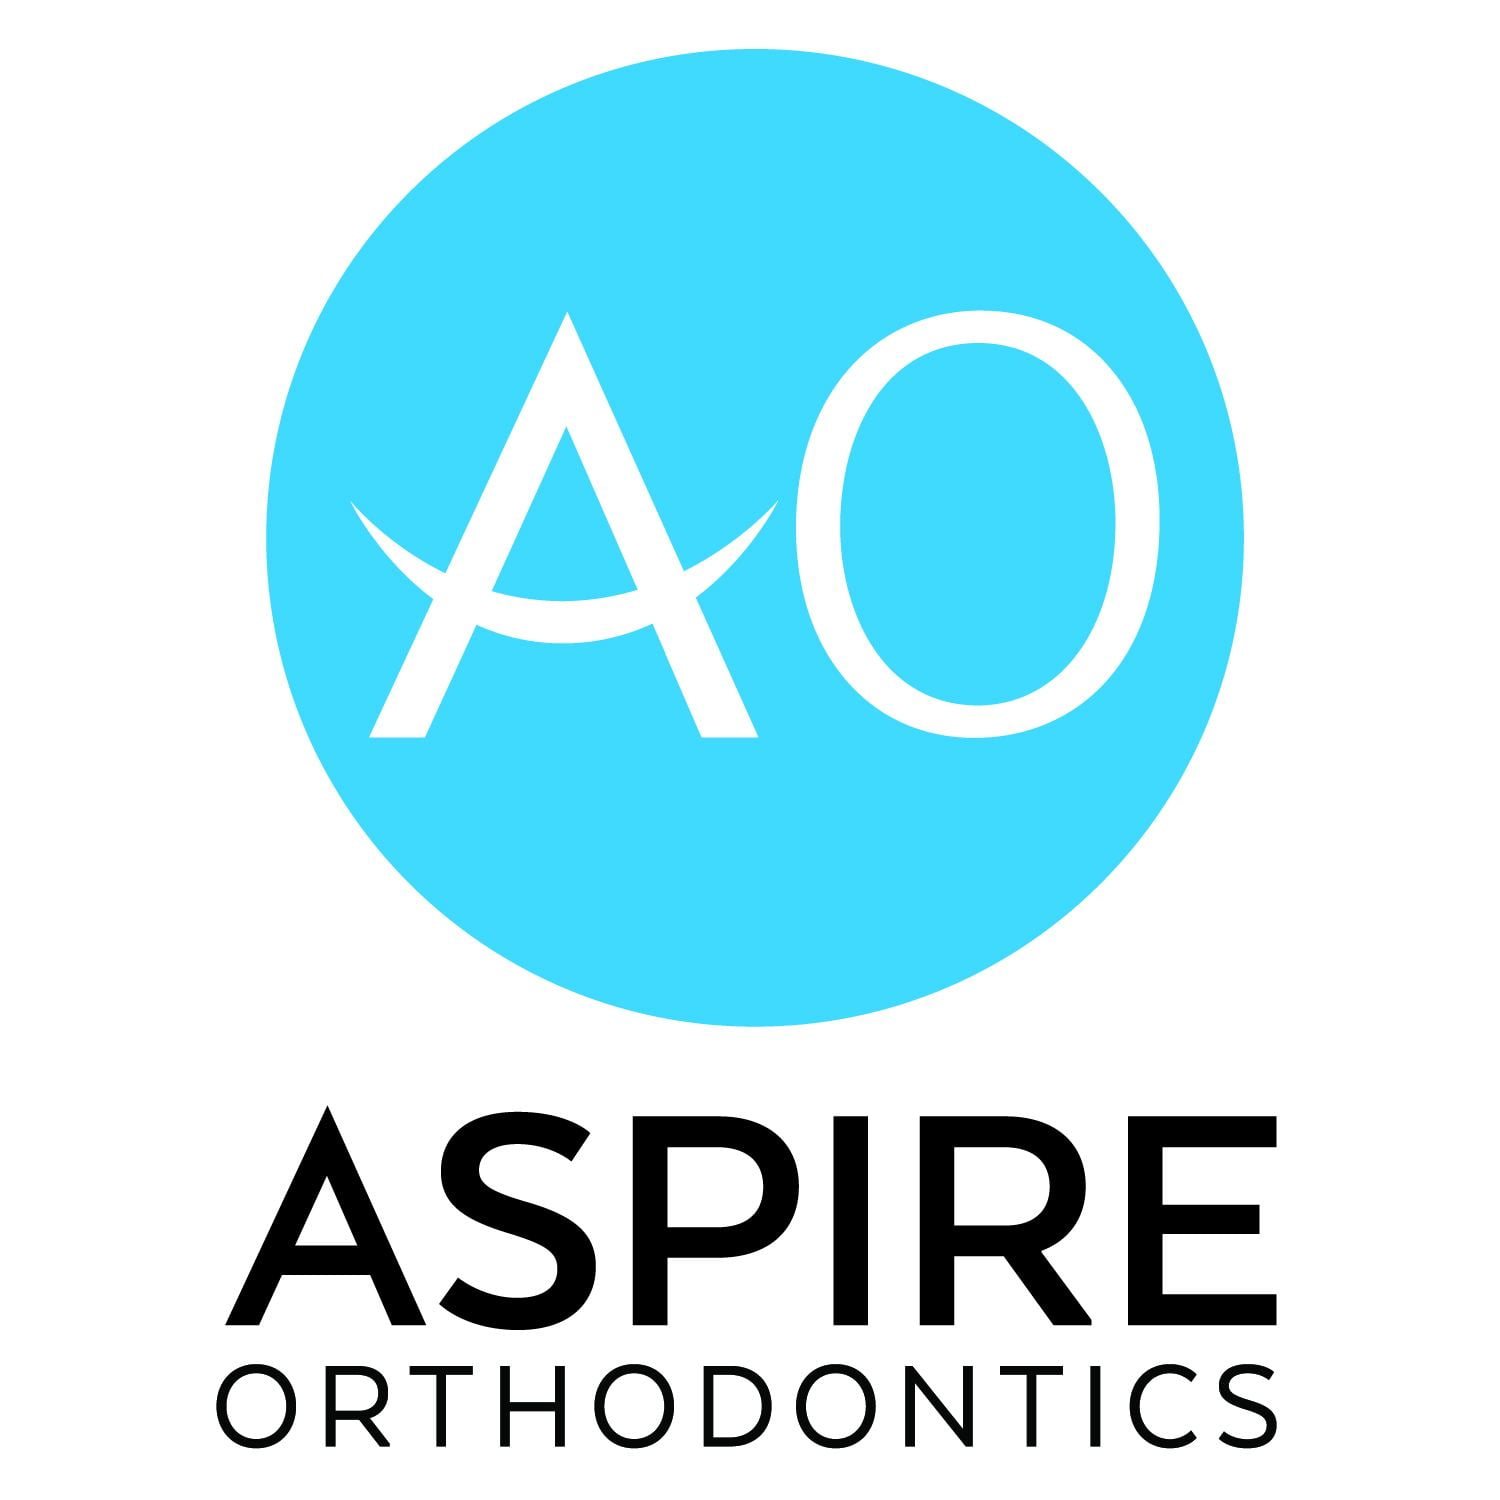 Aspire Orthodontics Provides Free Braces to Deserving Students In Area